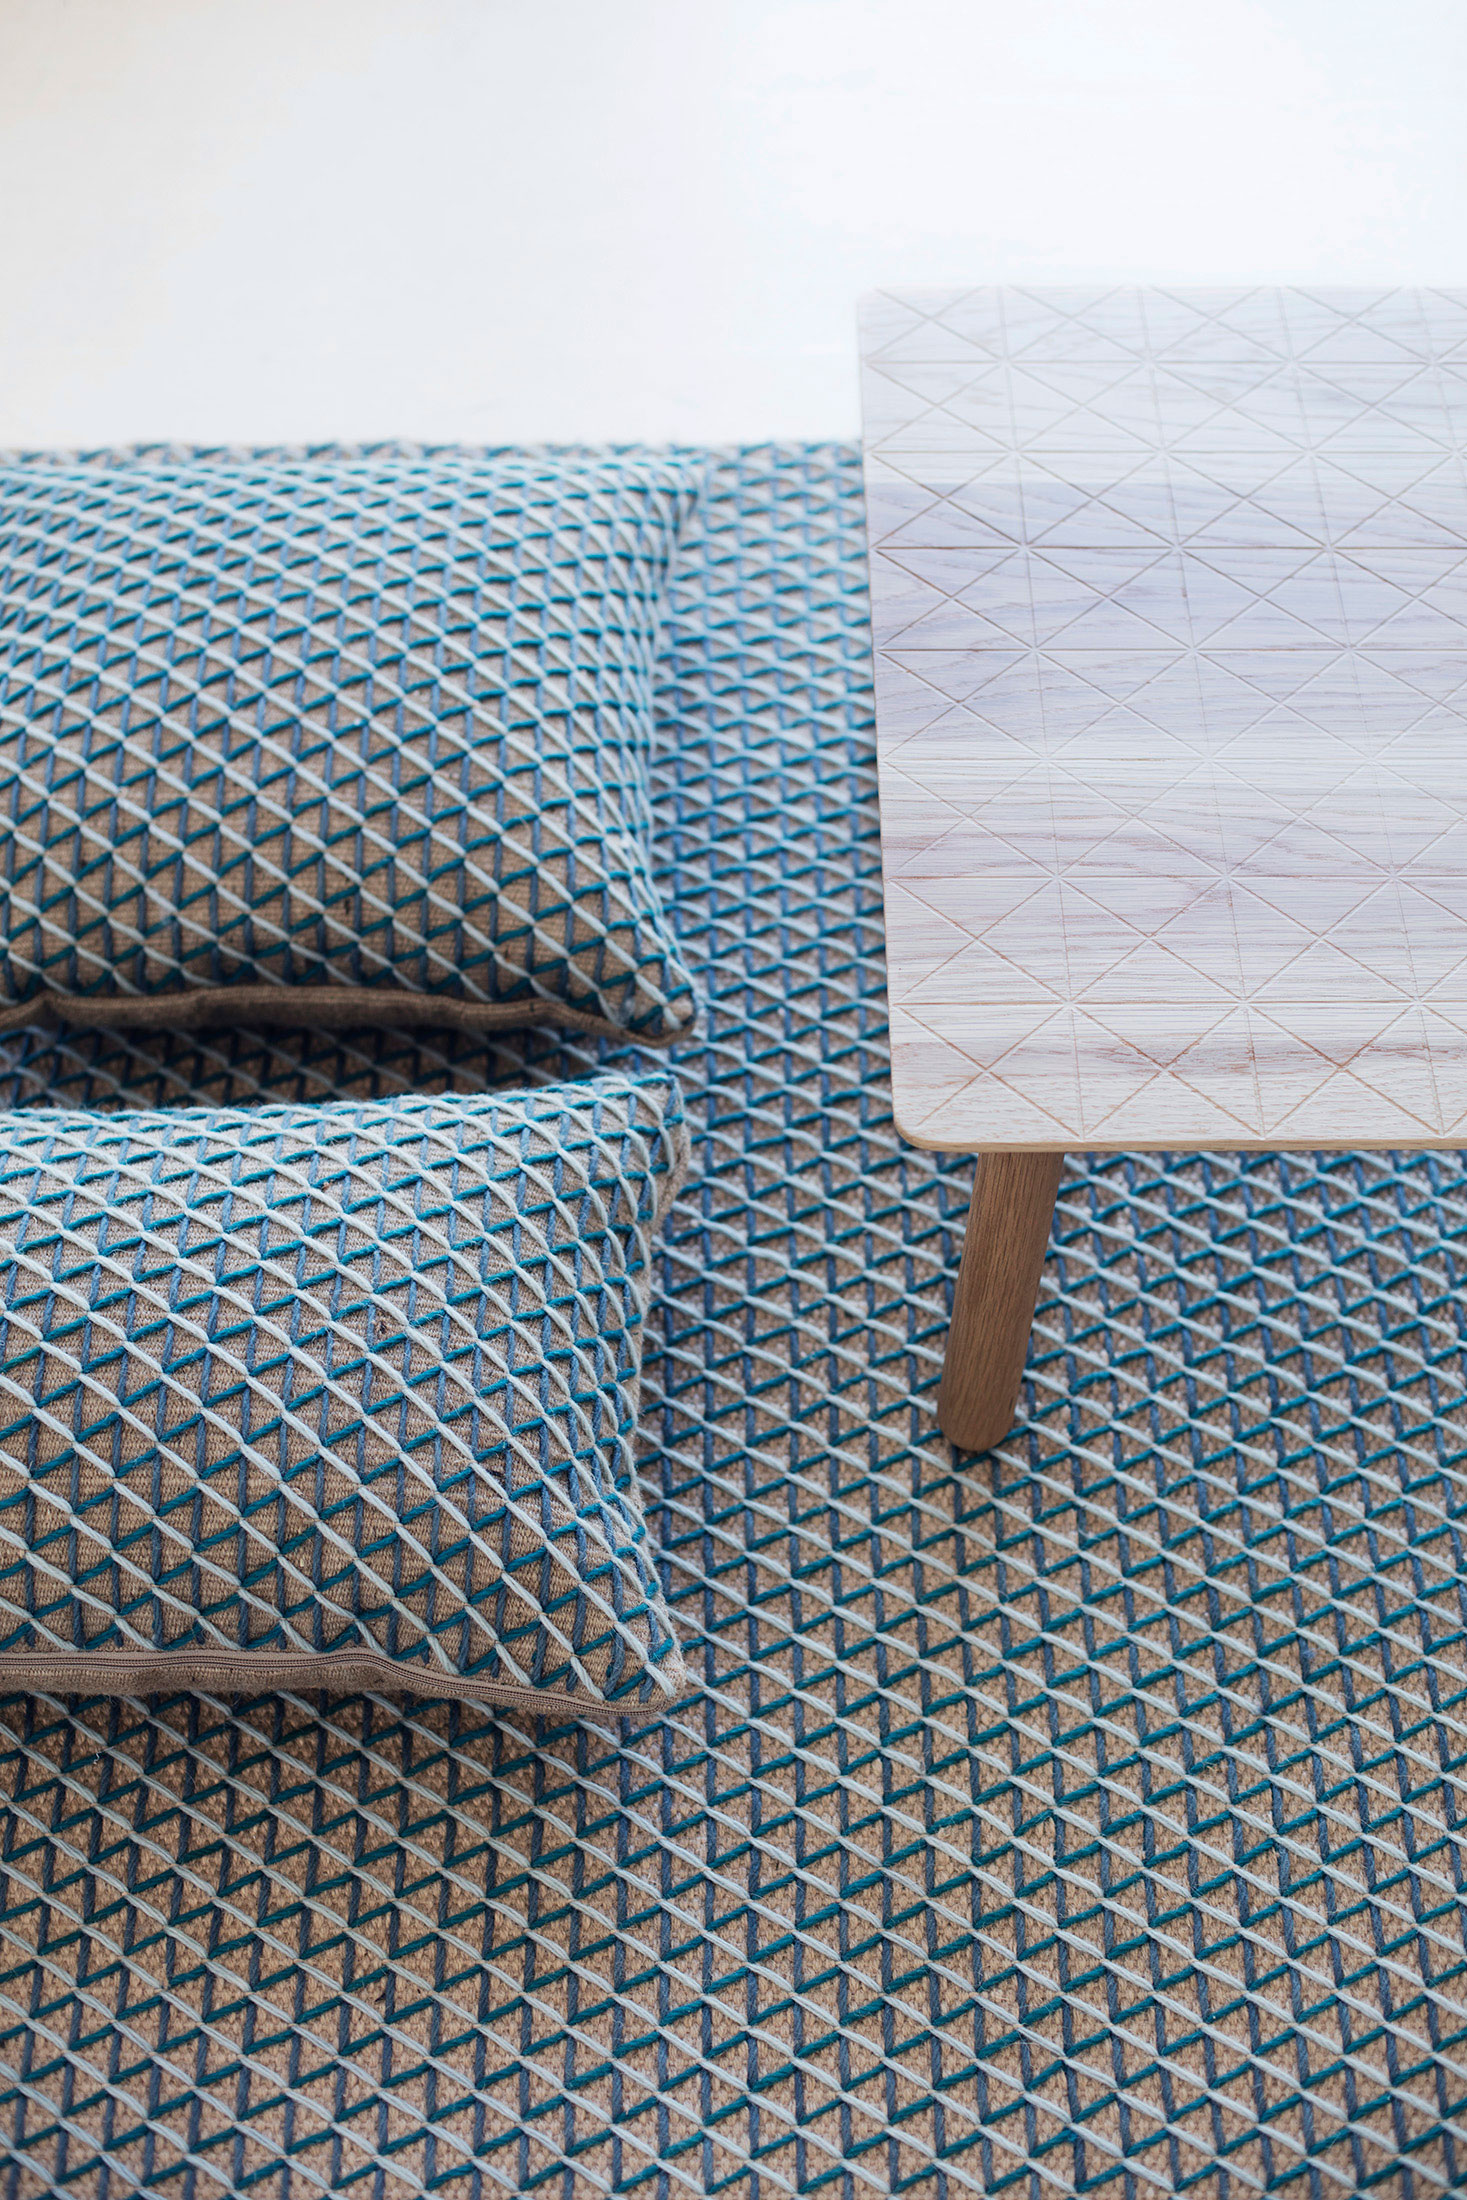 Rug and pillows from the Raw collection of Gandia Blasco's textile brand, Gan. (Photo: Courtesy Gandia Blasco)